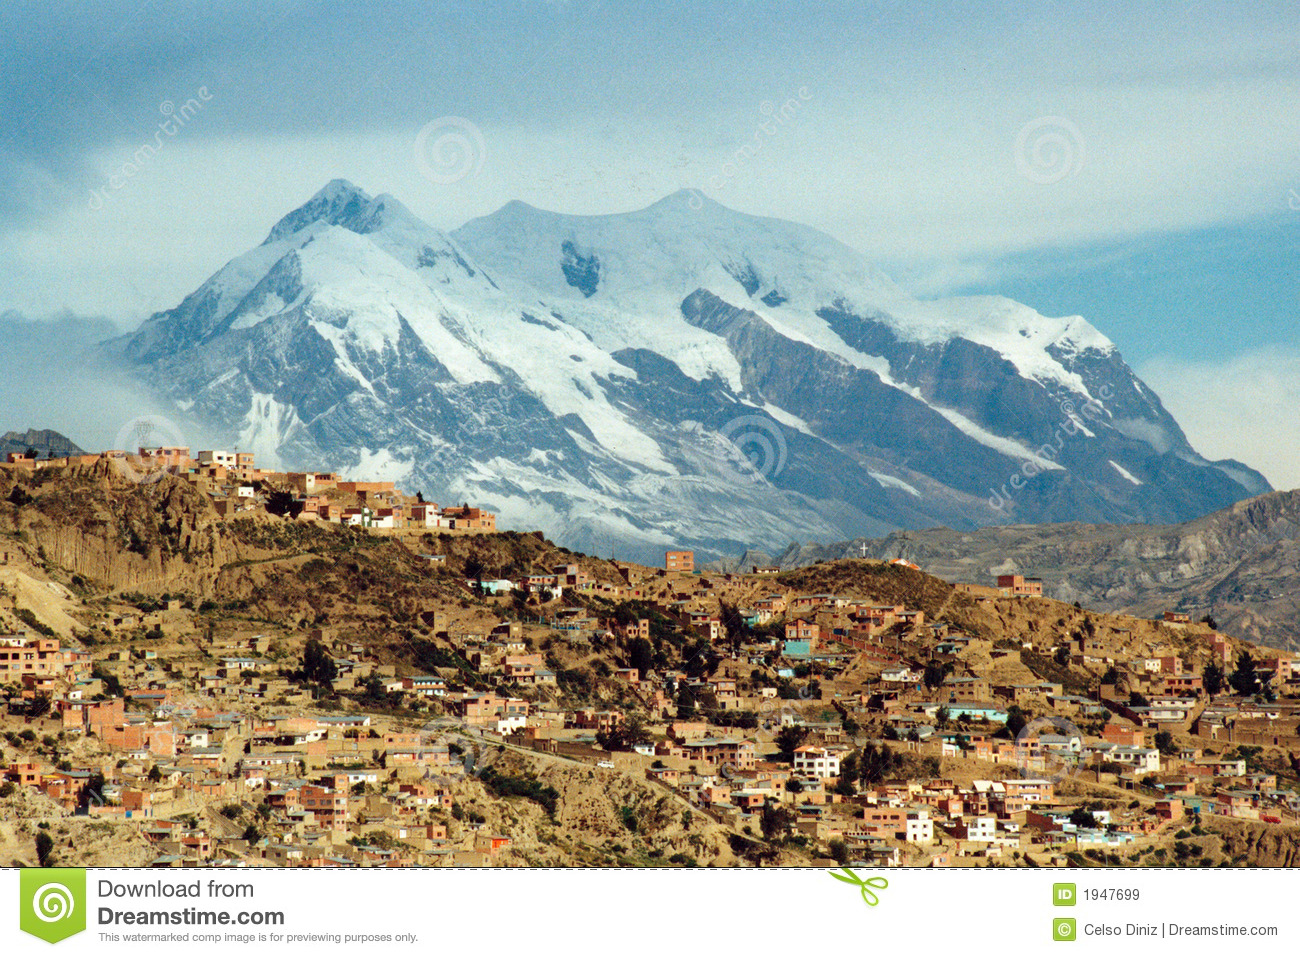 La Paz and Illimani mountain